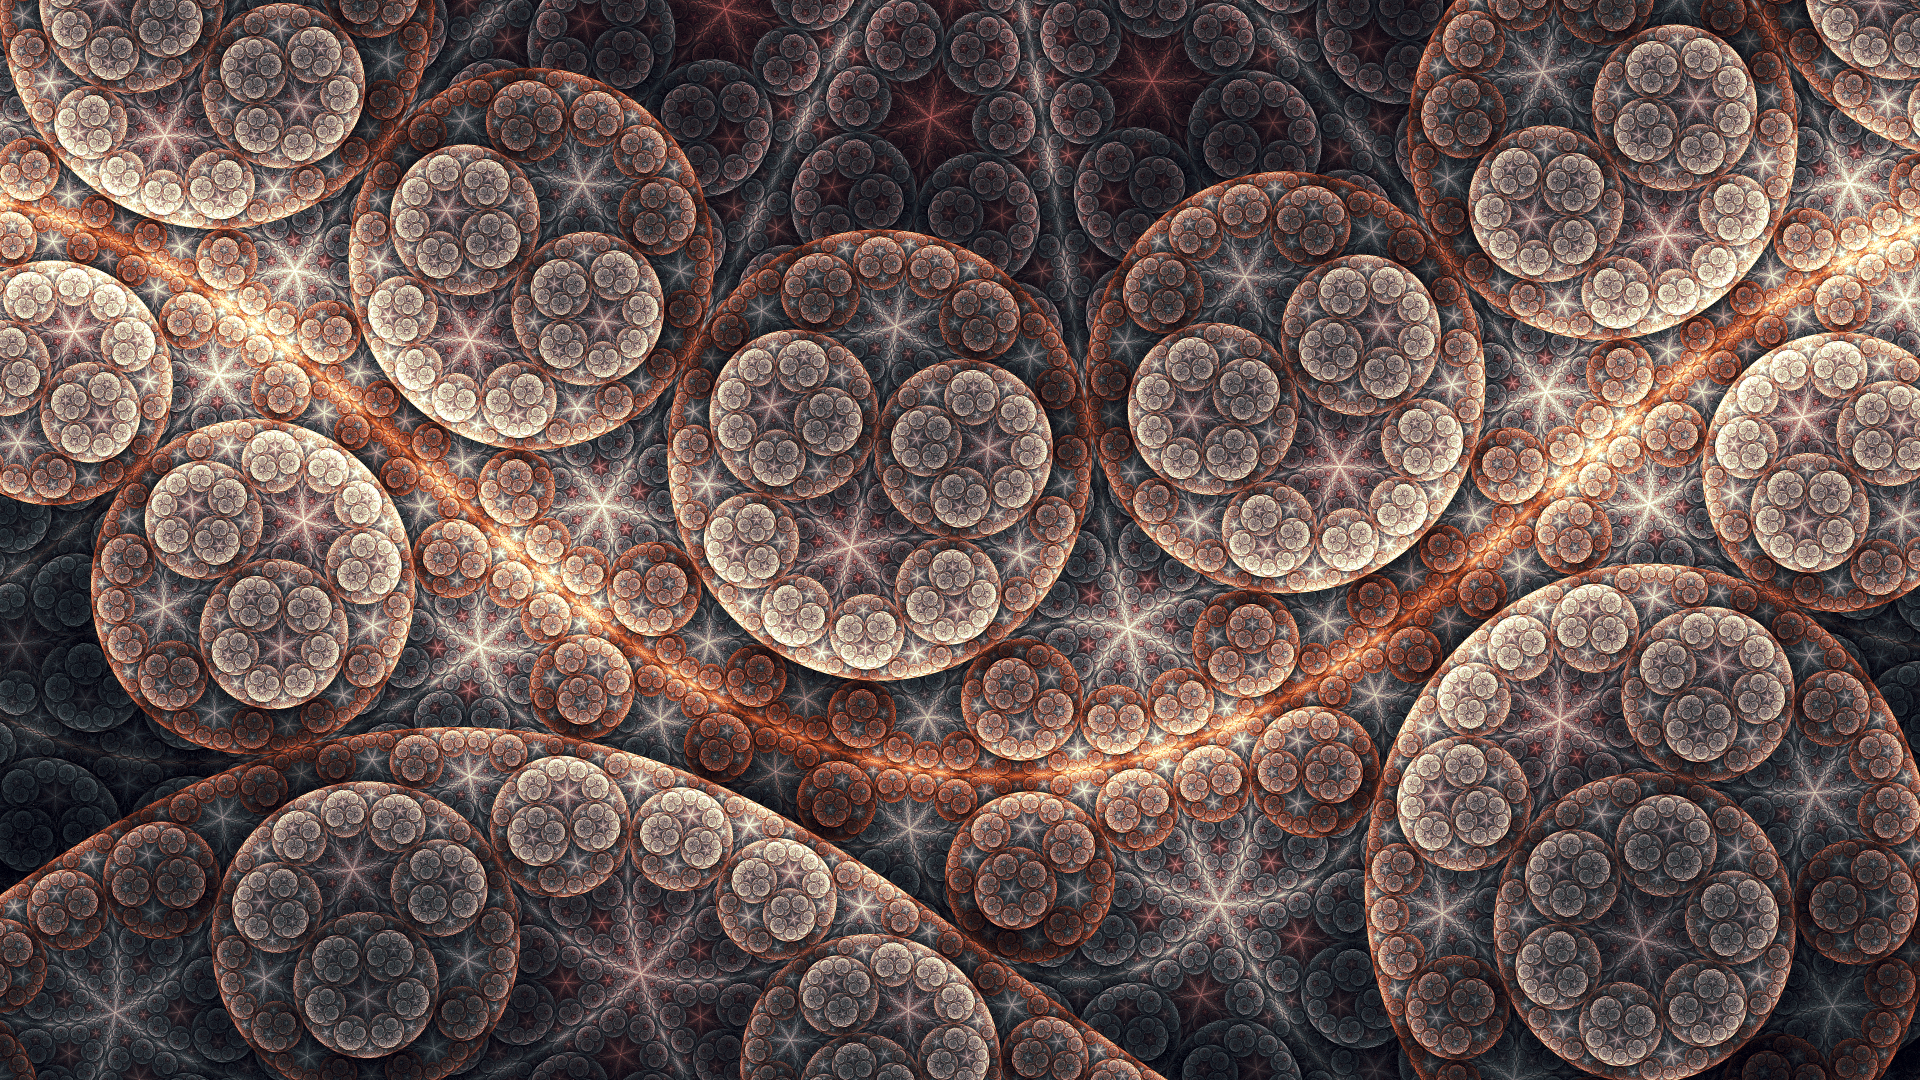 Abstract - Fractal  Artistic Pattern Wallpaper